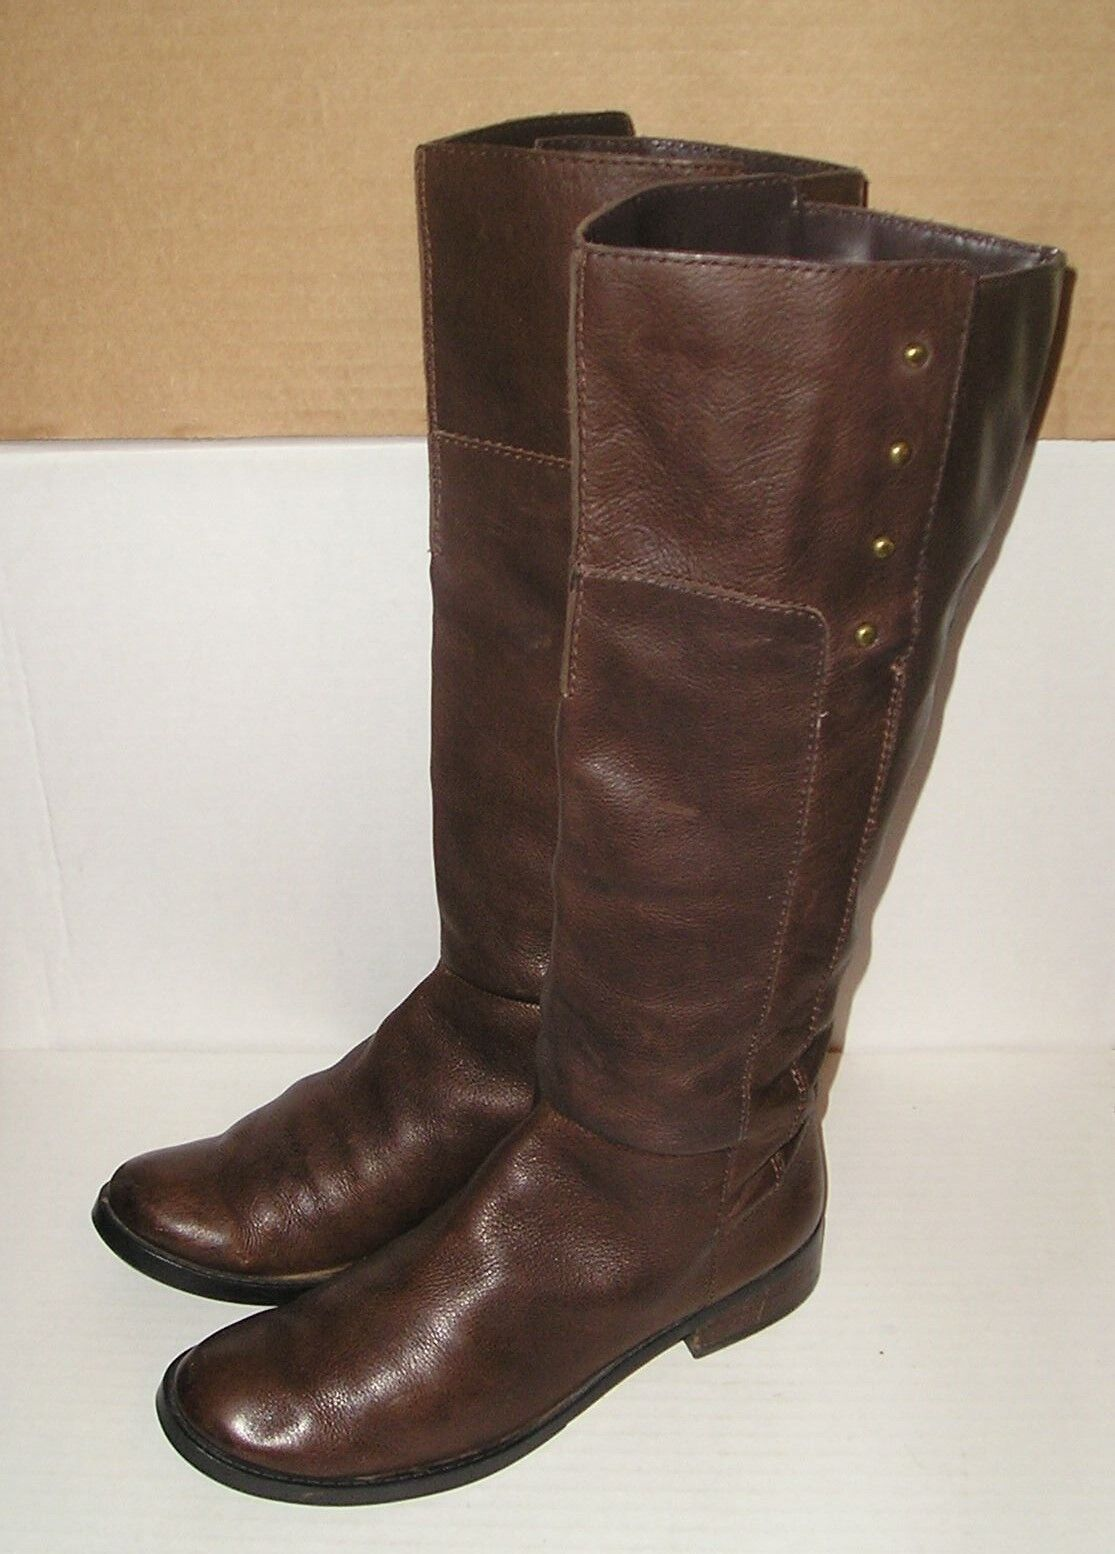 NINE WEST Women's  Toreador  Brown Leather Tall Pull-On Riding Boots Size 6 M US